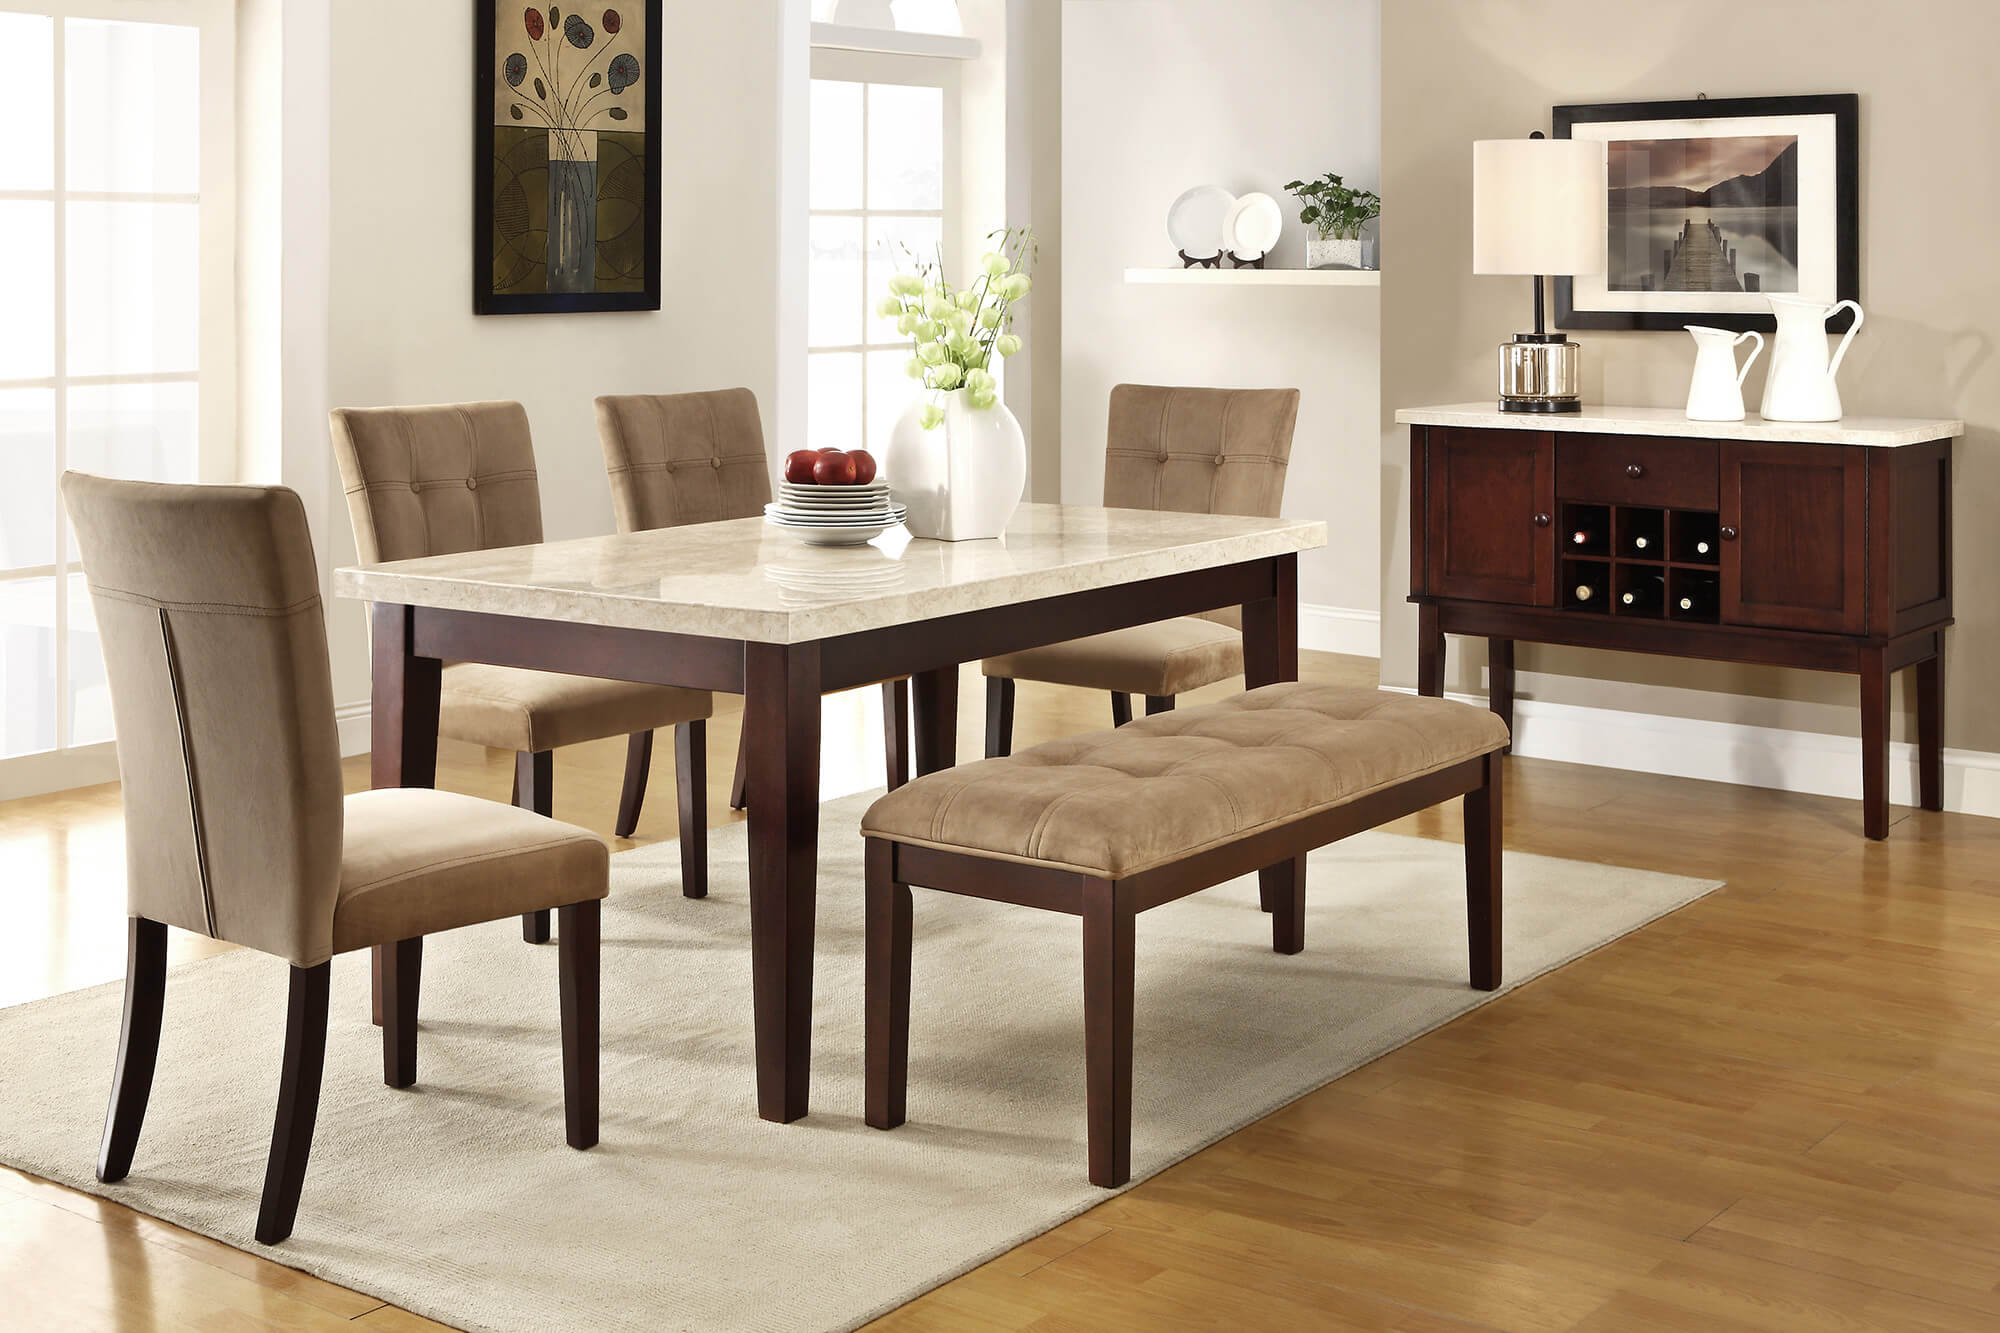 White marble dining table dining room furniture - Here S A 6 Piece Rubberwood Dining Set With Faux Marble Table Top With Tan Upholstery For